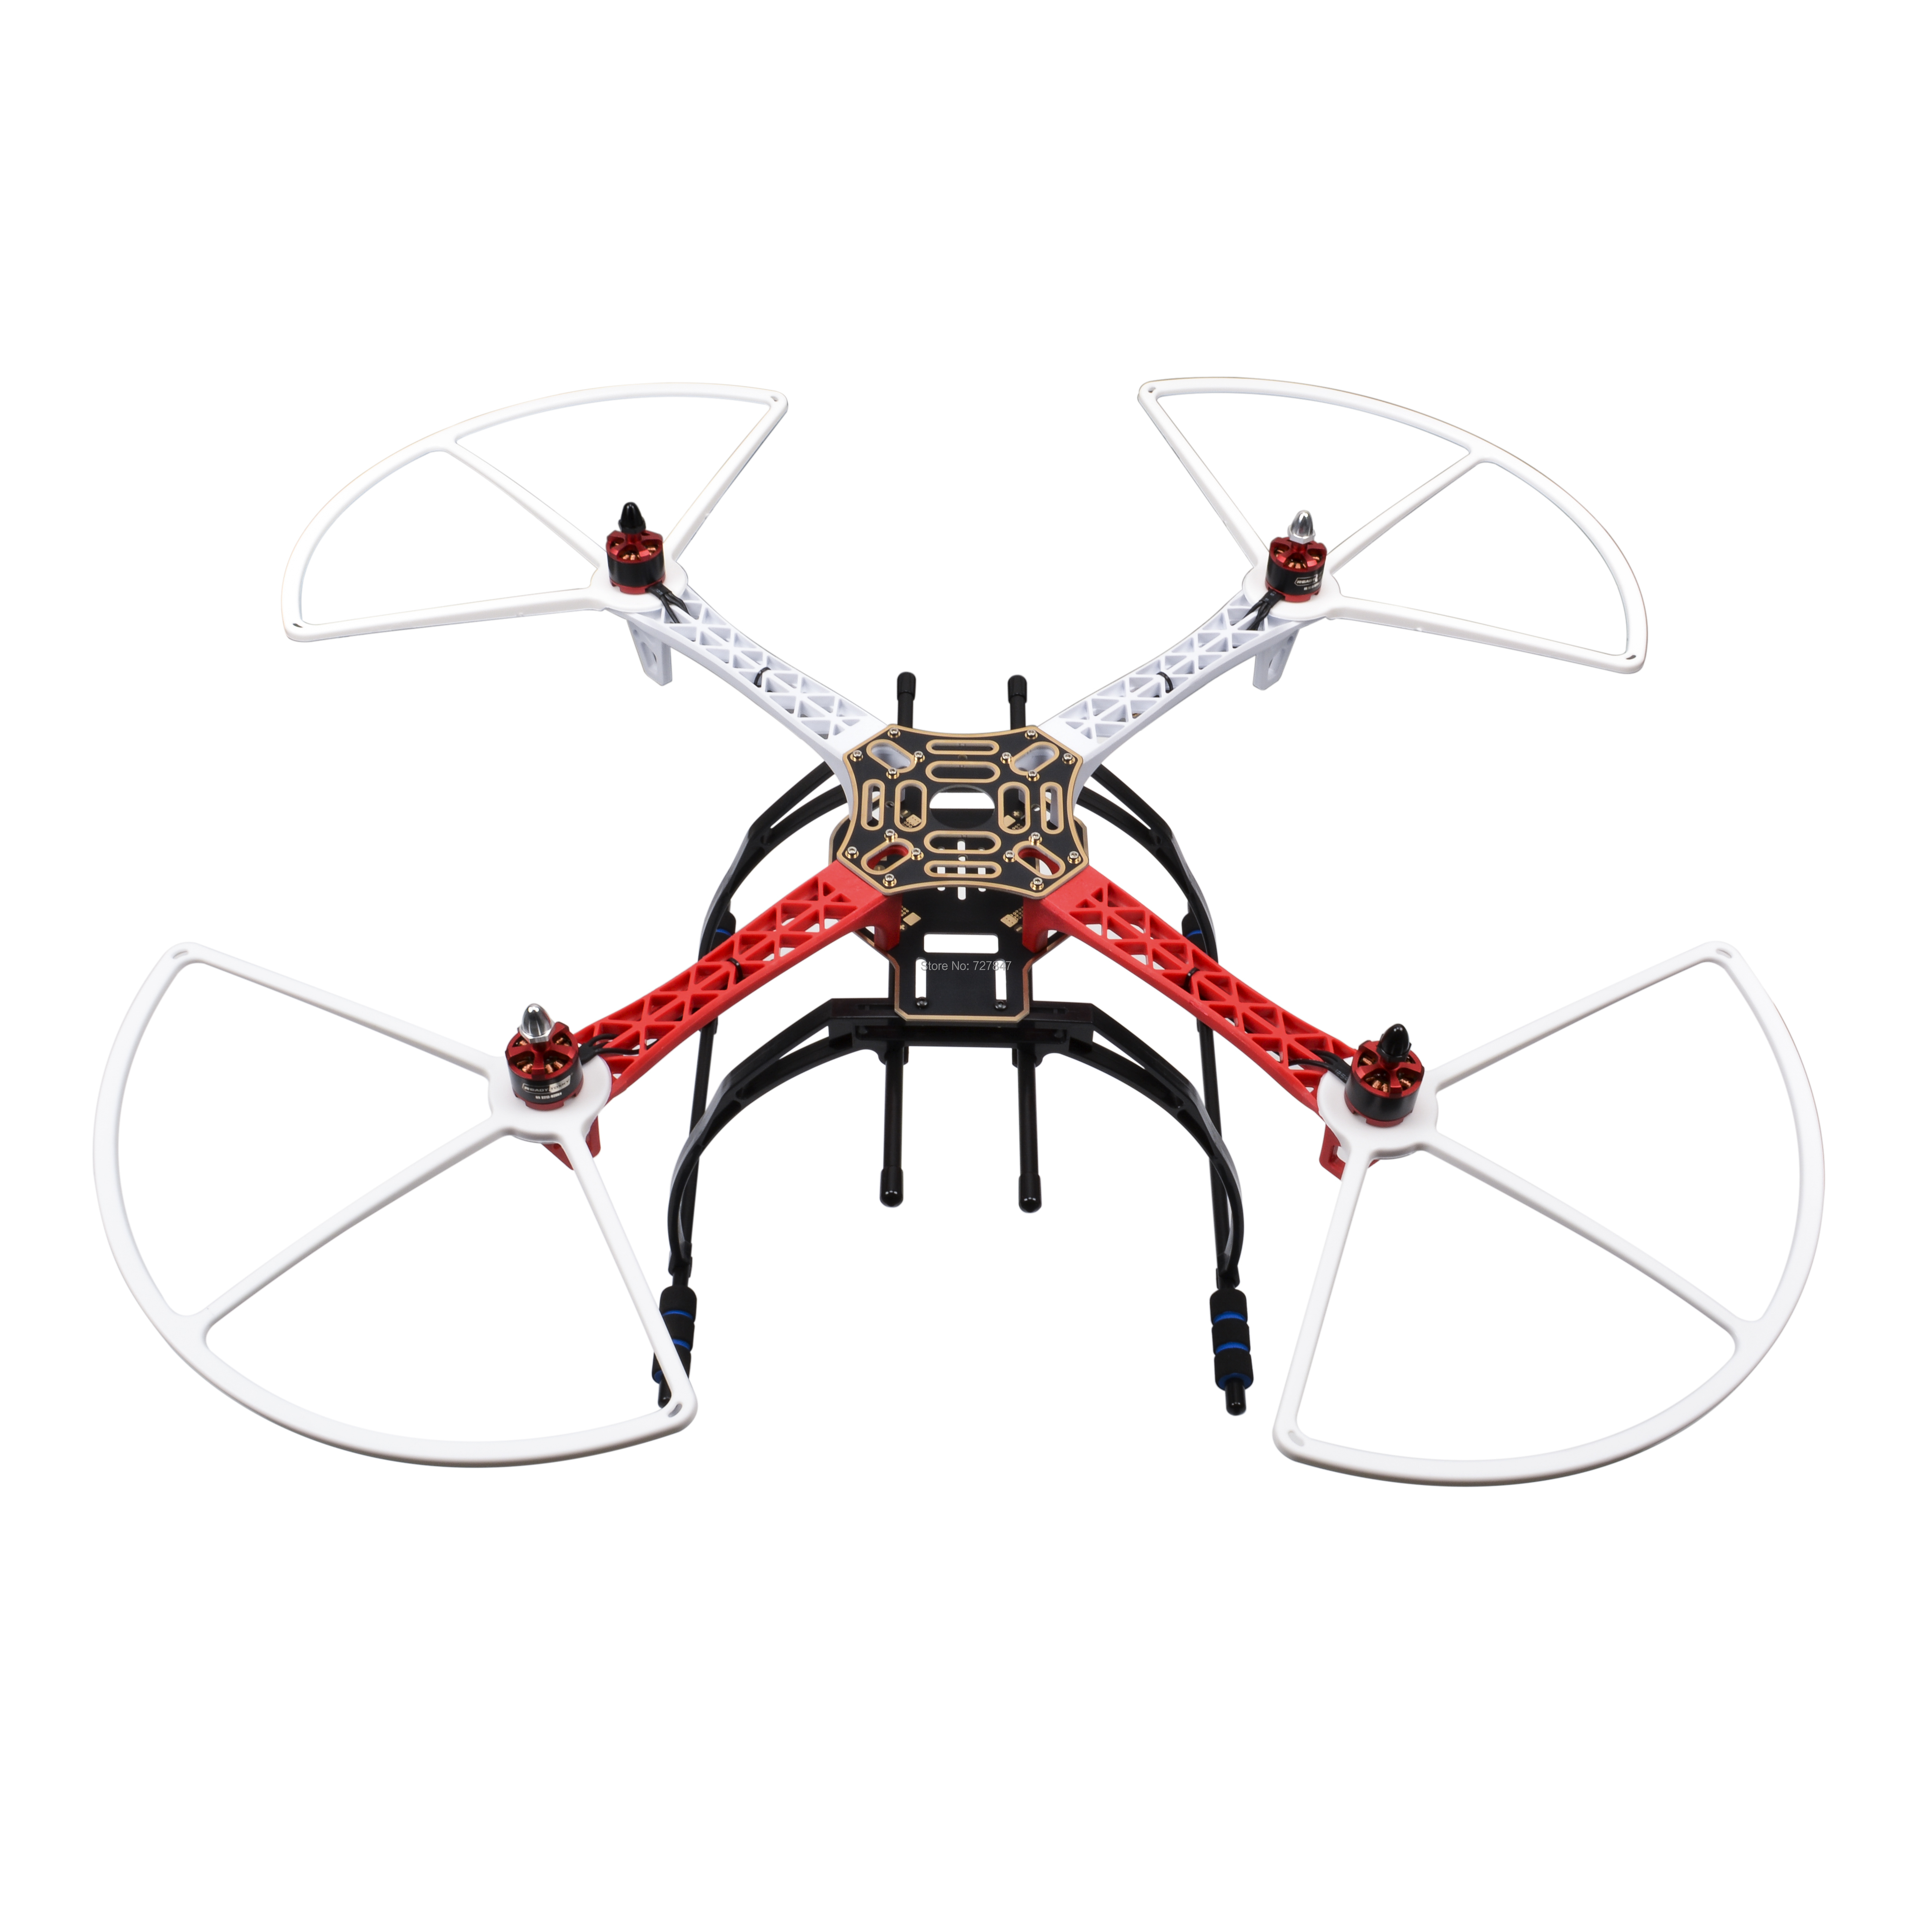 F450 Drone 450mm Frame W/ Landing Gear Propeller Protective Guard For RC MWC 4 Axis RC Multicopter Quadcopter Heli Multi-Rotor